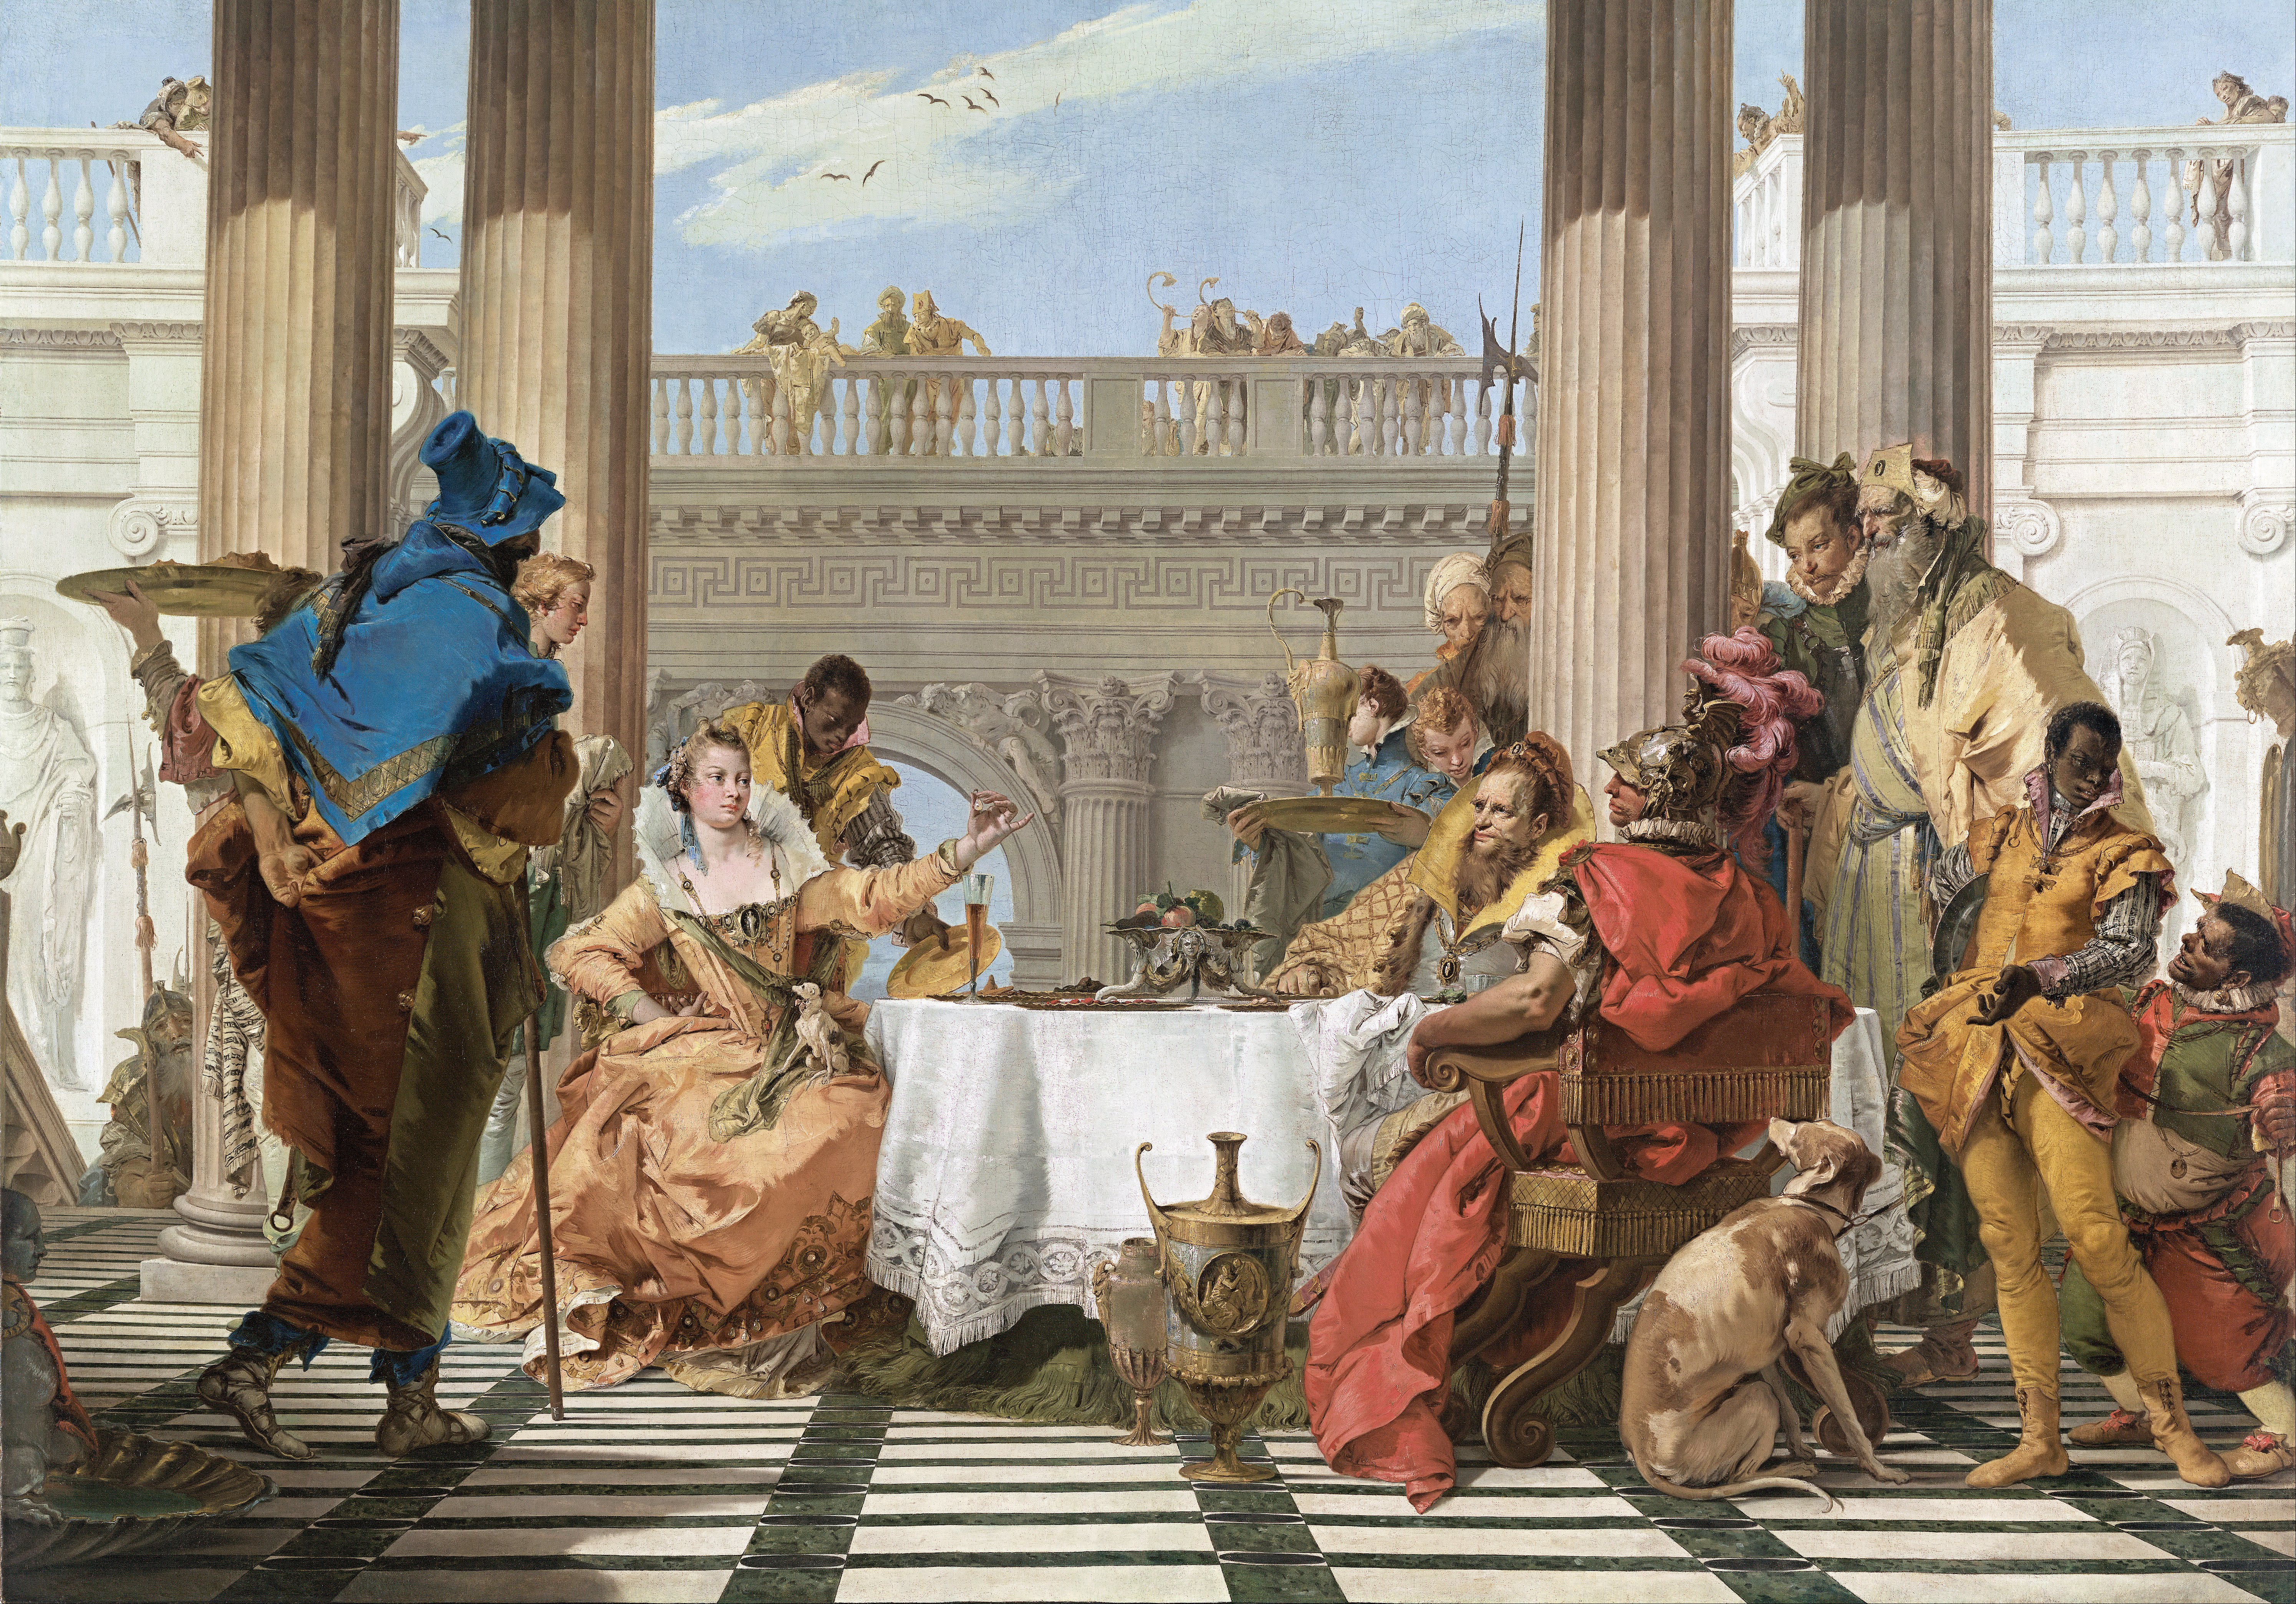 File:Giambattista Tiepolo - The Banquet of Cleopatra